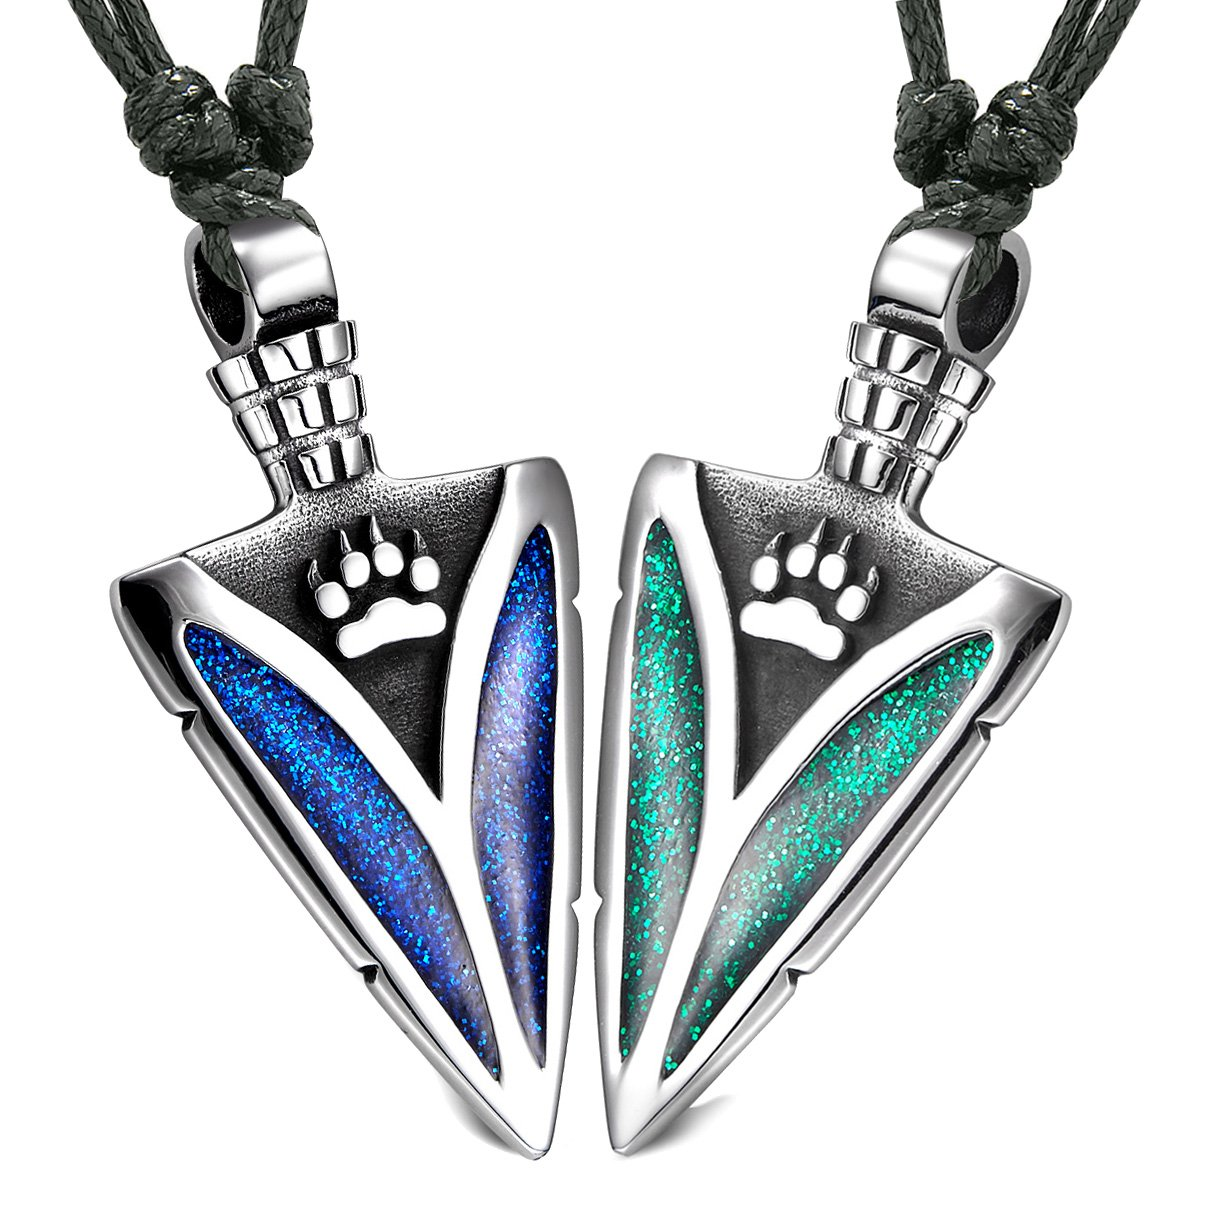 Arrowhead Wild Wolf Paw Love Couples or BFF Set Amulets Sparkling Royal Blue Green Adjustable Necklaces